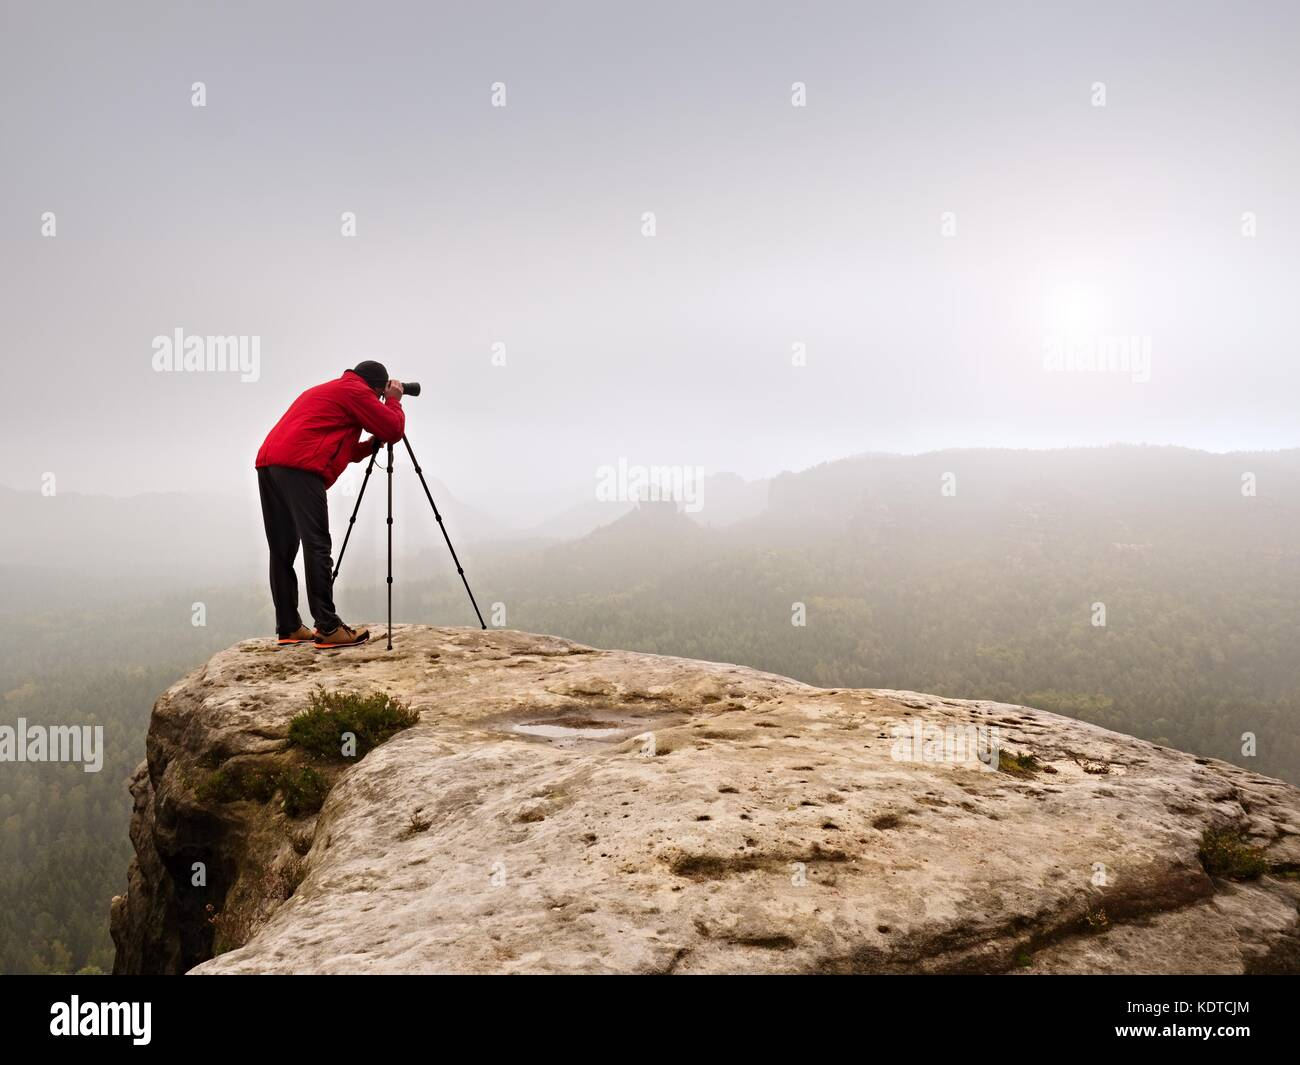 Photographr looking into viewfinder of dslr digital camera stand on tripod. Artist  photographing mountain and cloudy - Stock Image